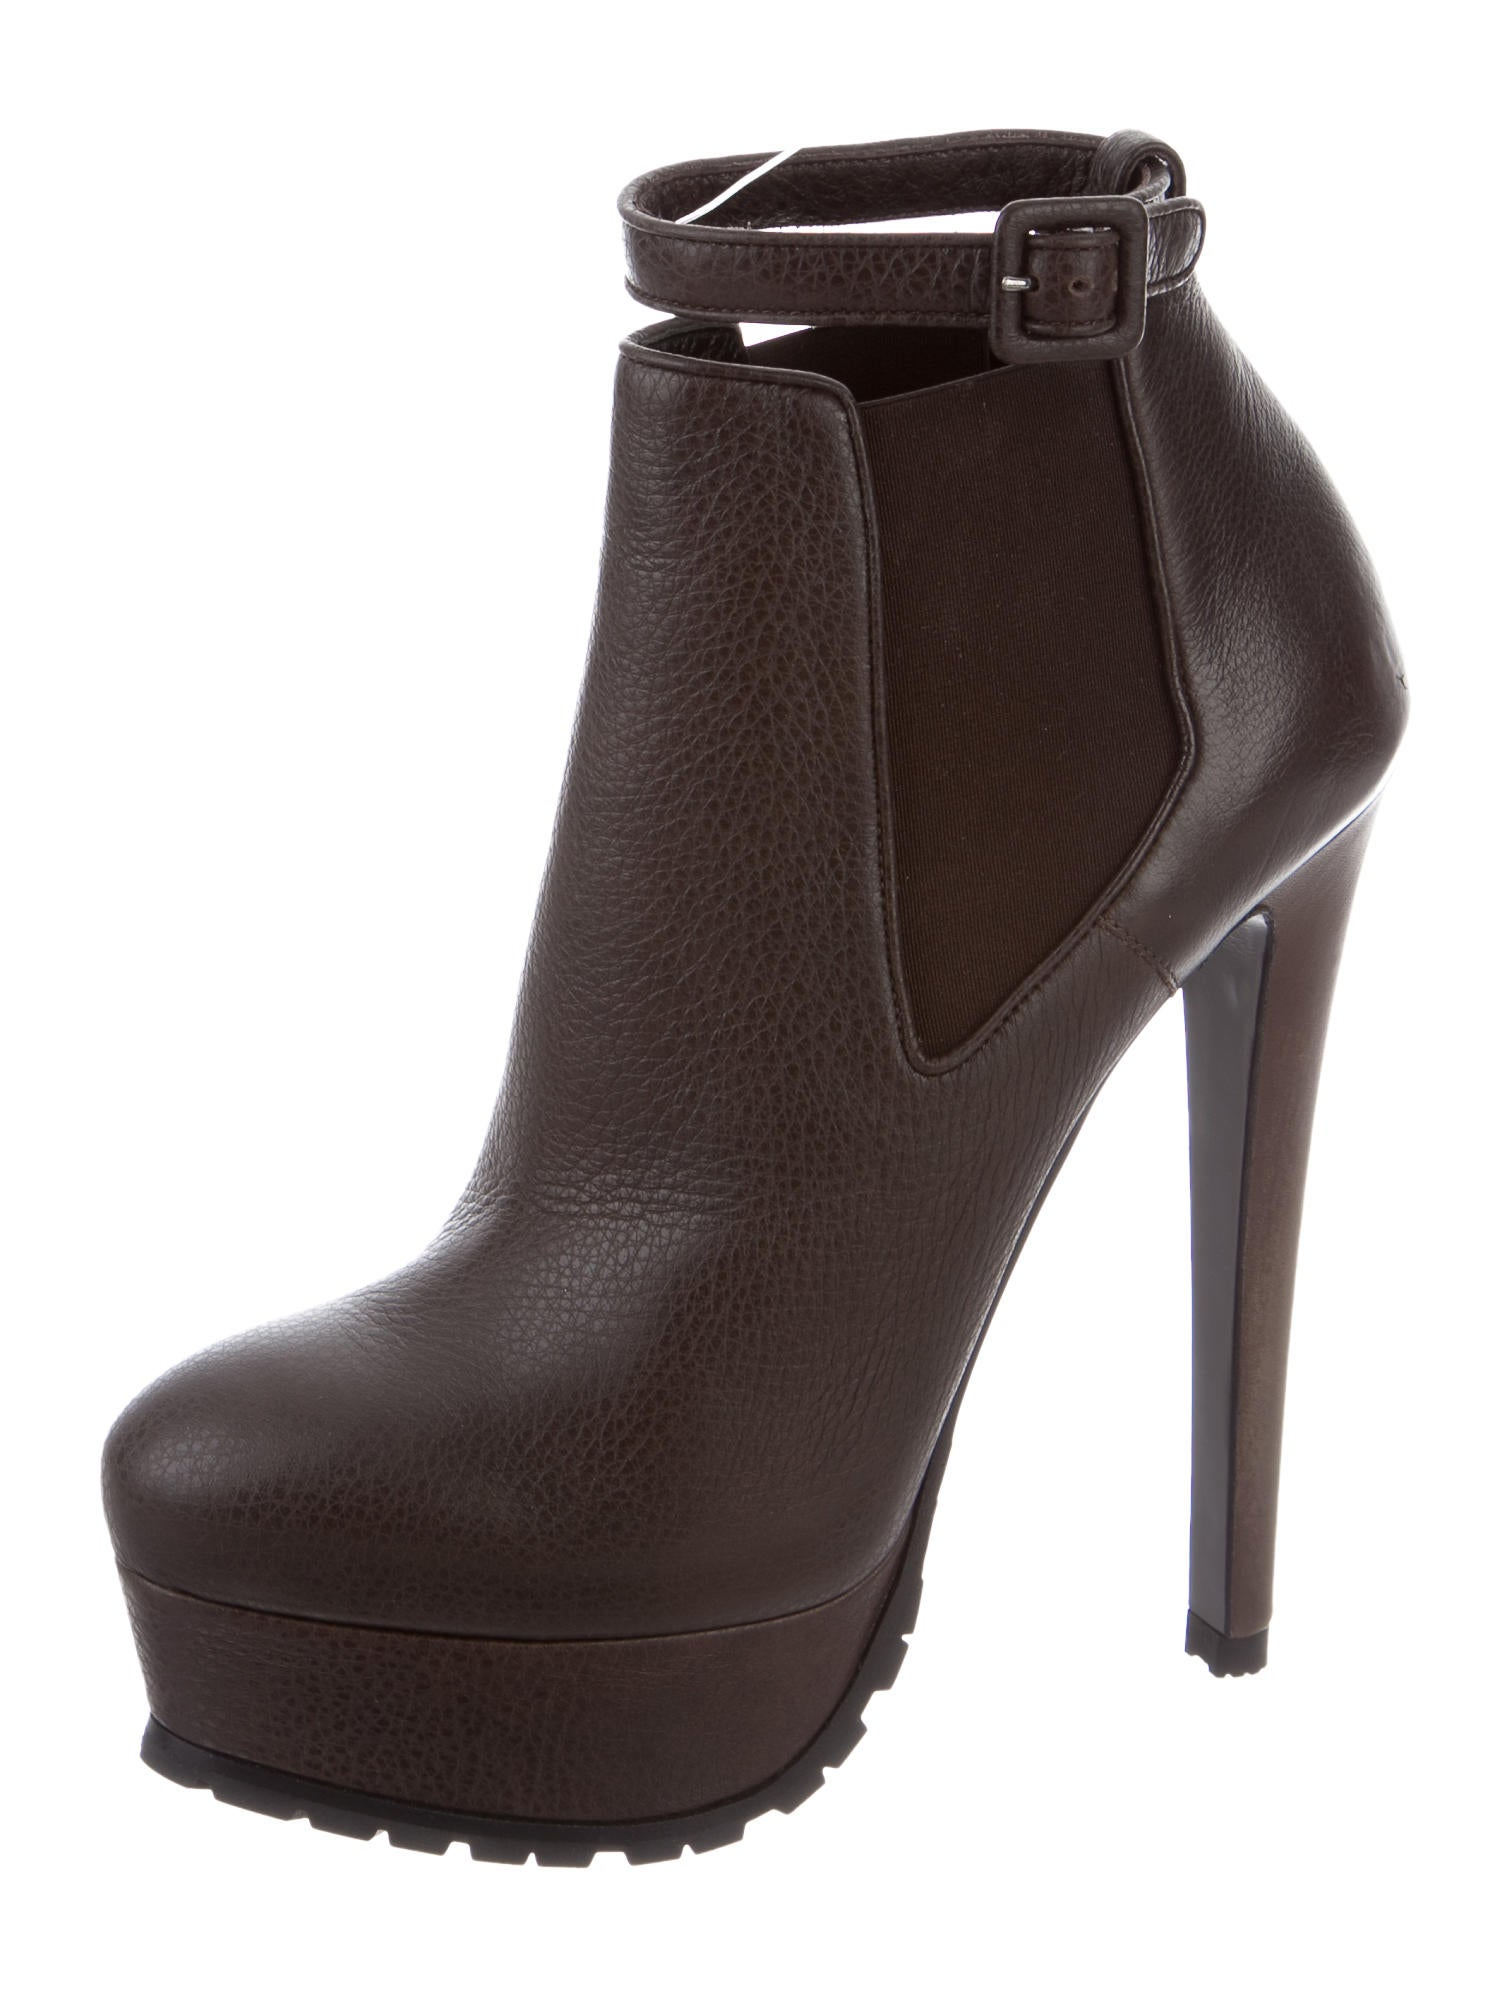 vera wang leather platform booties shoes ver25947